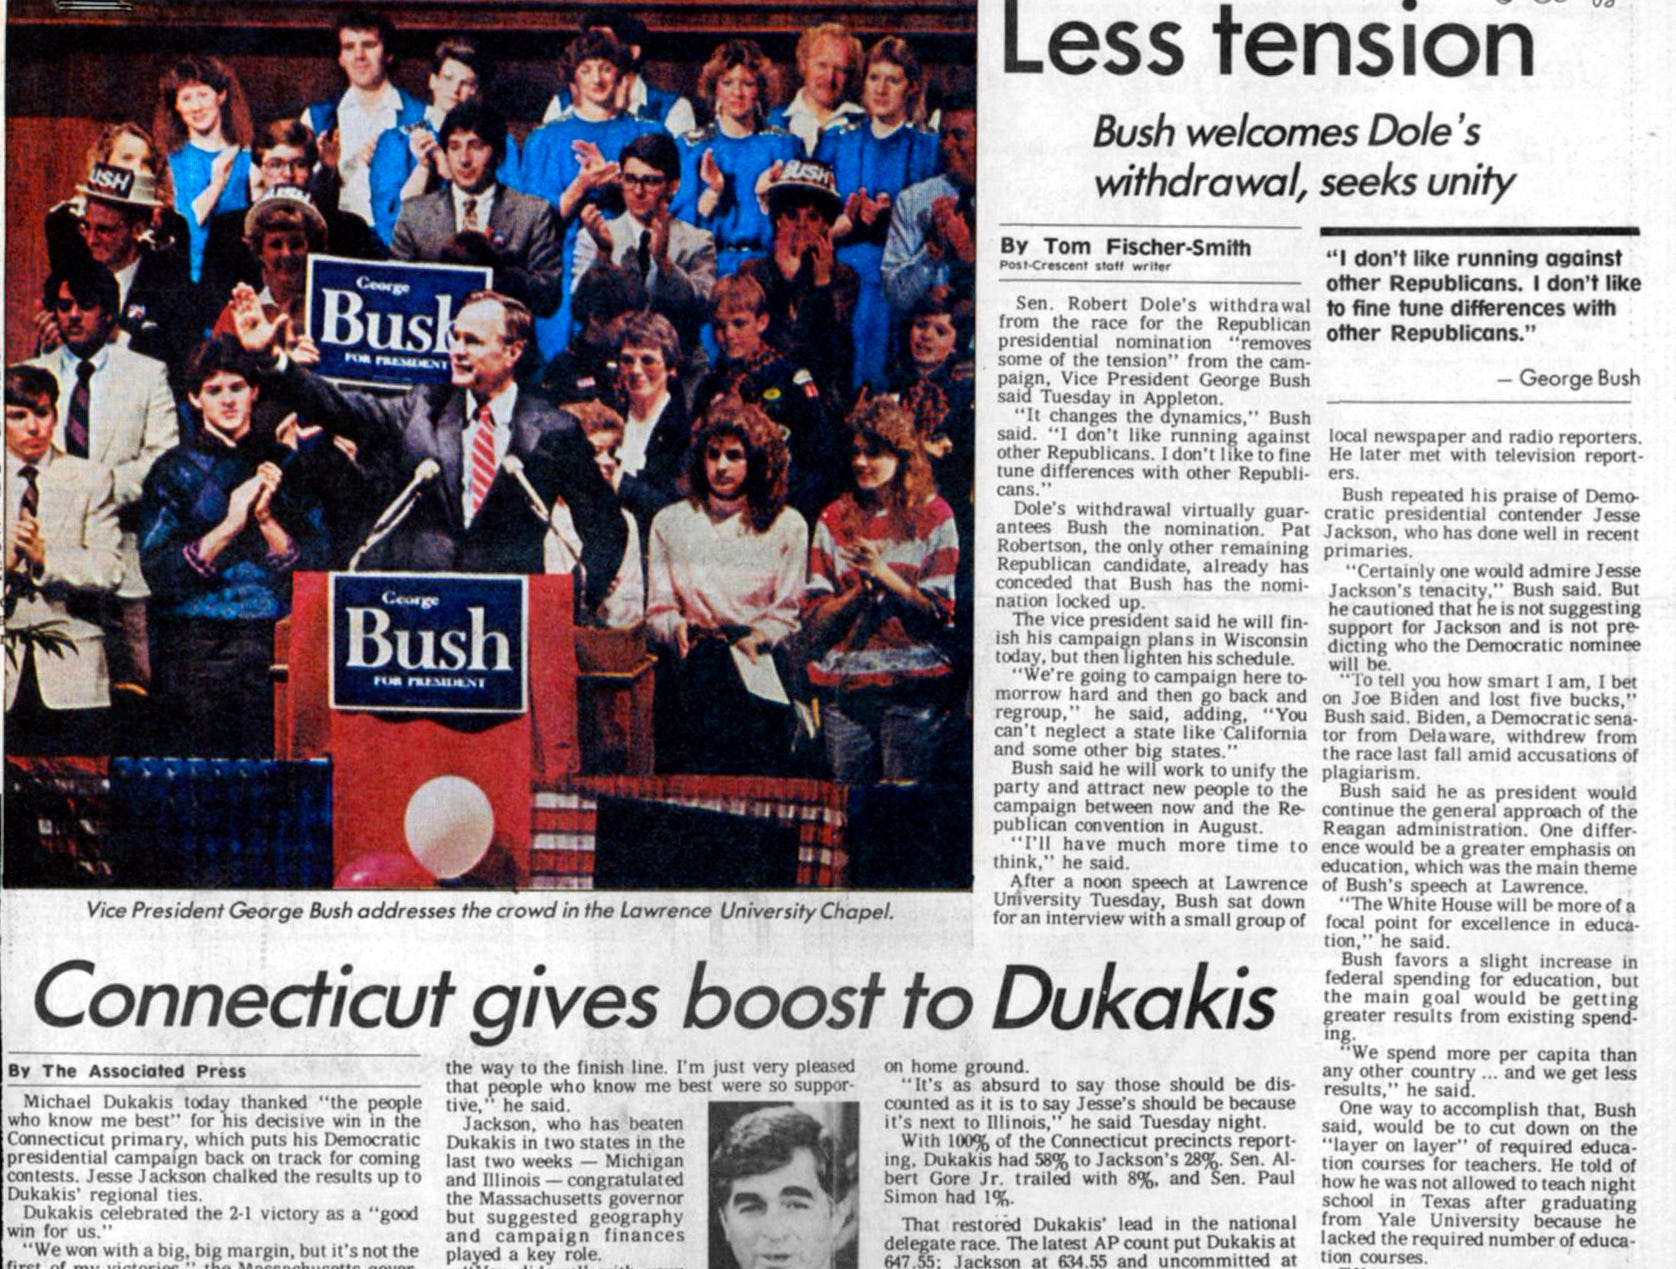 Vice President George H. W. Bush addresses the crowd in the Lawrence University Chapel on March 29, 1988. Less tension article by Tom Fischer-Smith in The Post-Crescent.